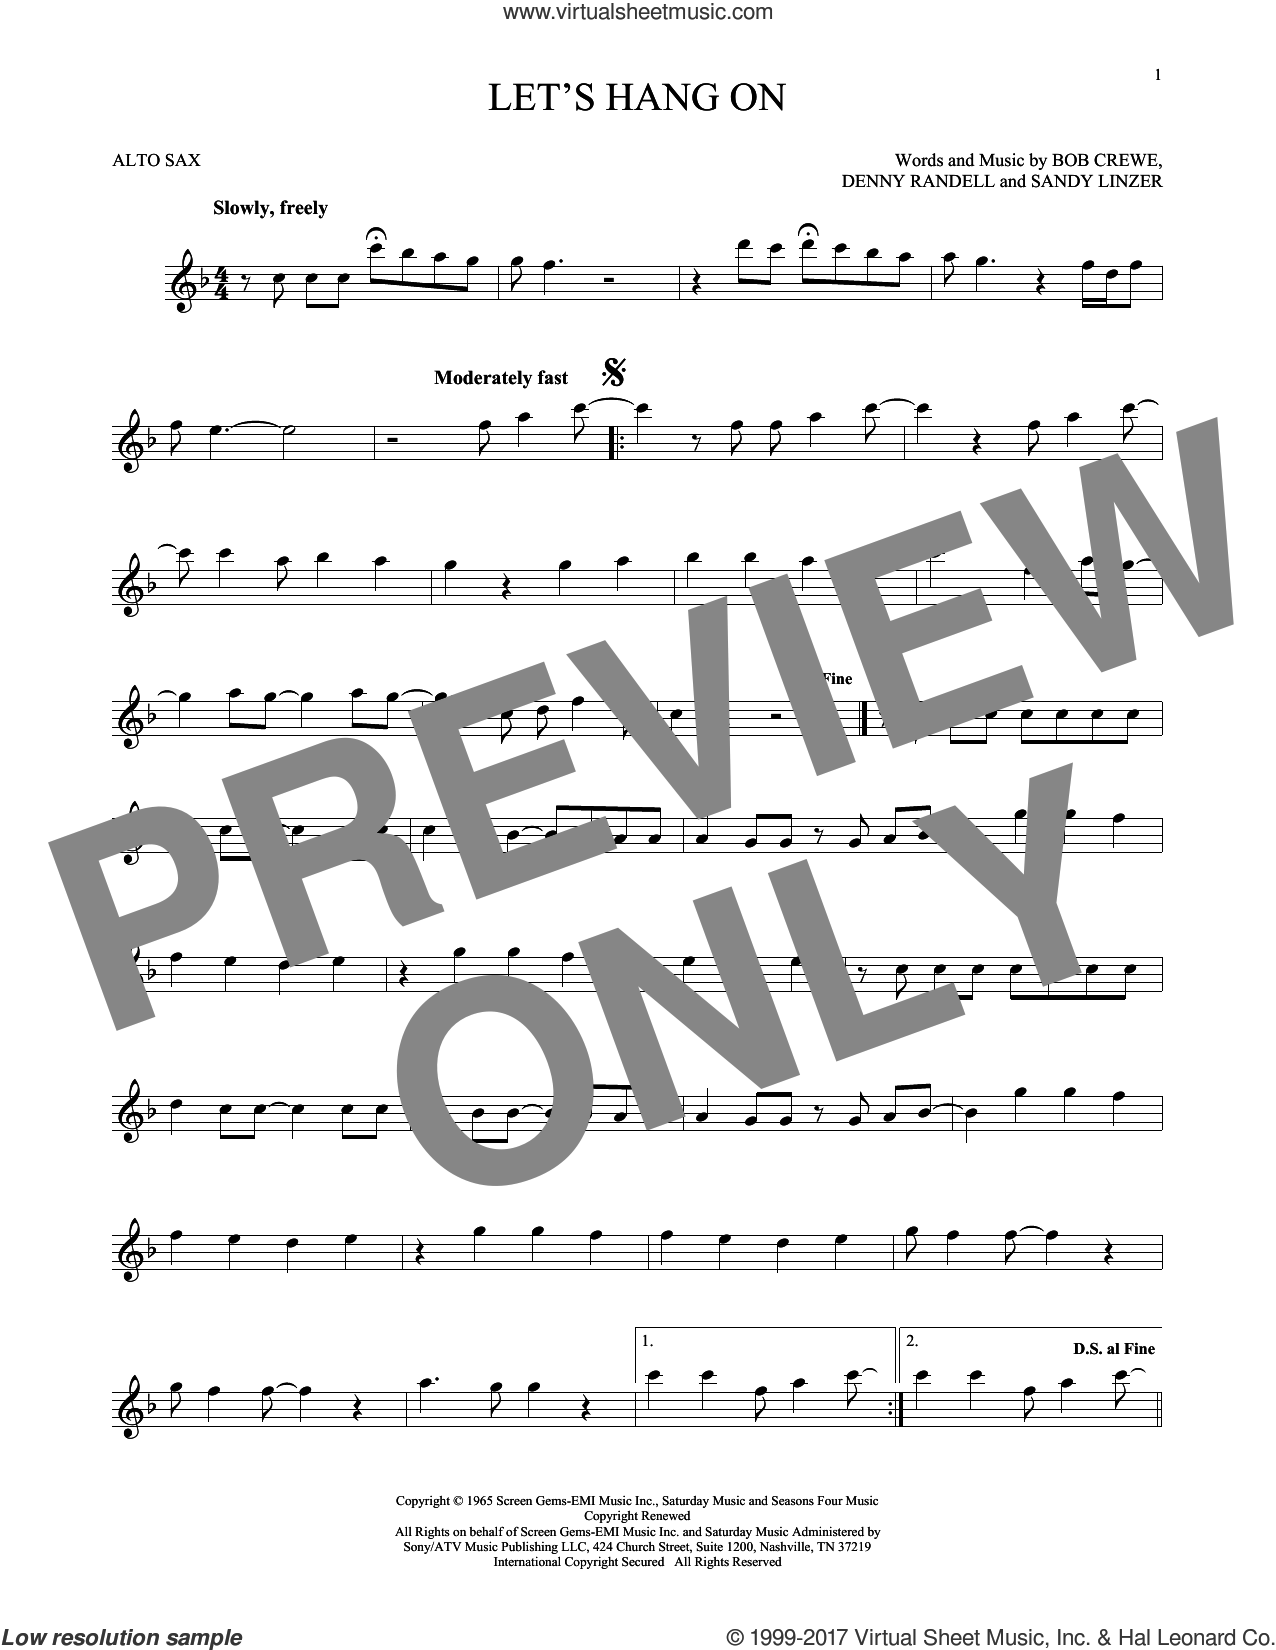 Let's Hang On sheet music for alto saxophone solo by The 4 Seasons, Bob Crewe, Denny Randell and Sandy Linzer, intermediate skill level